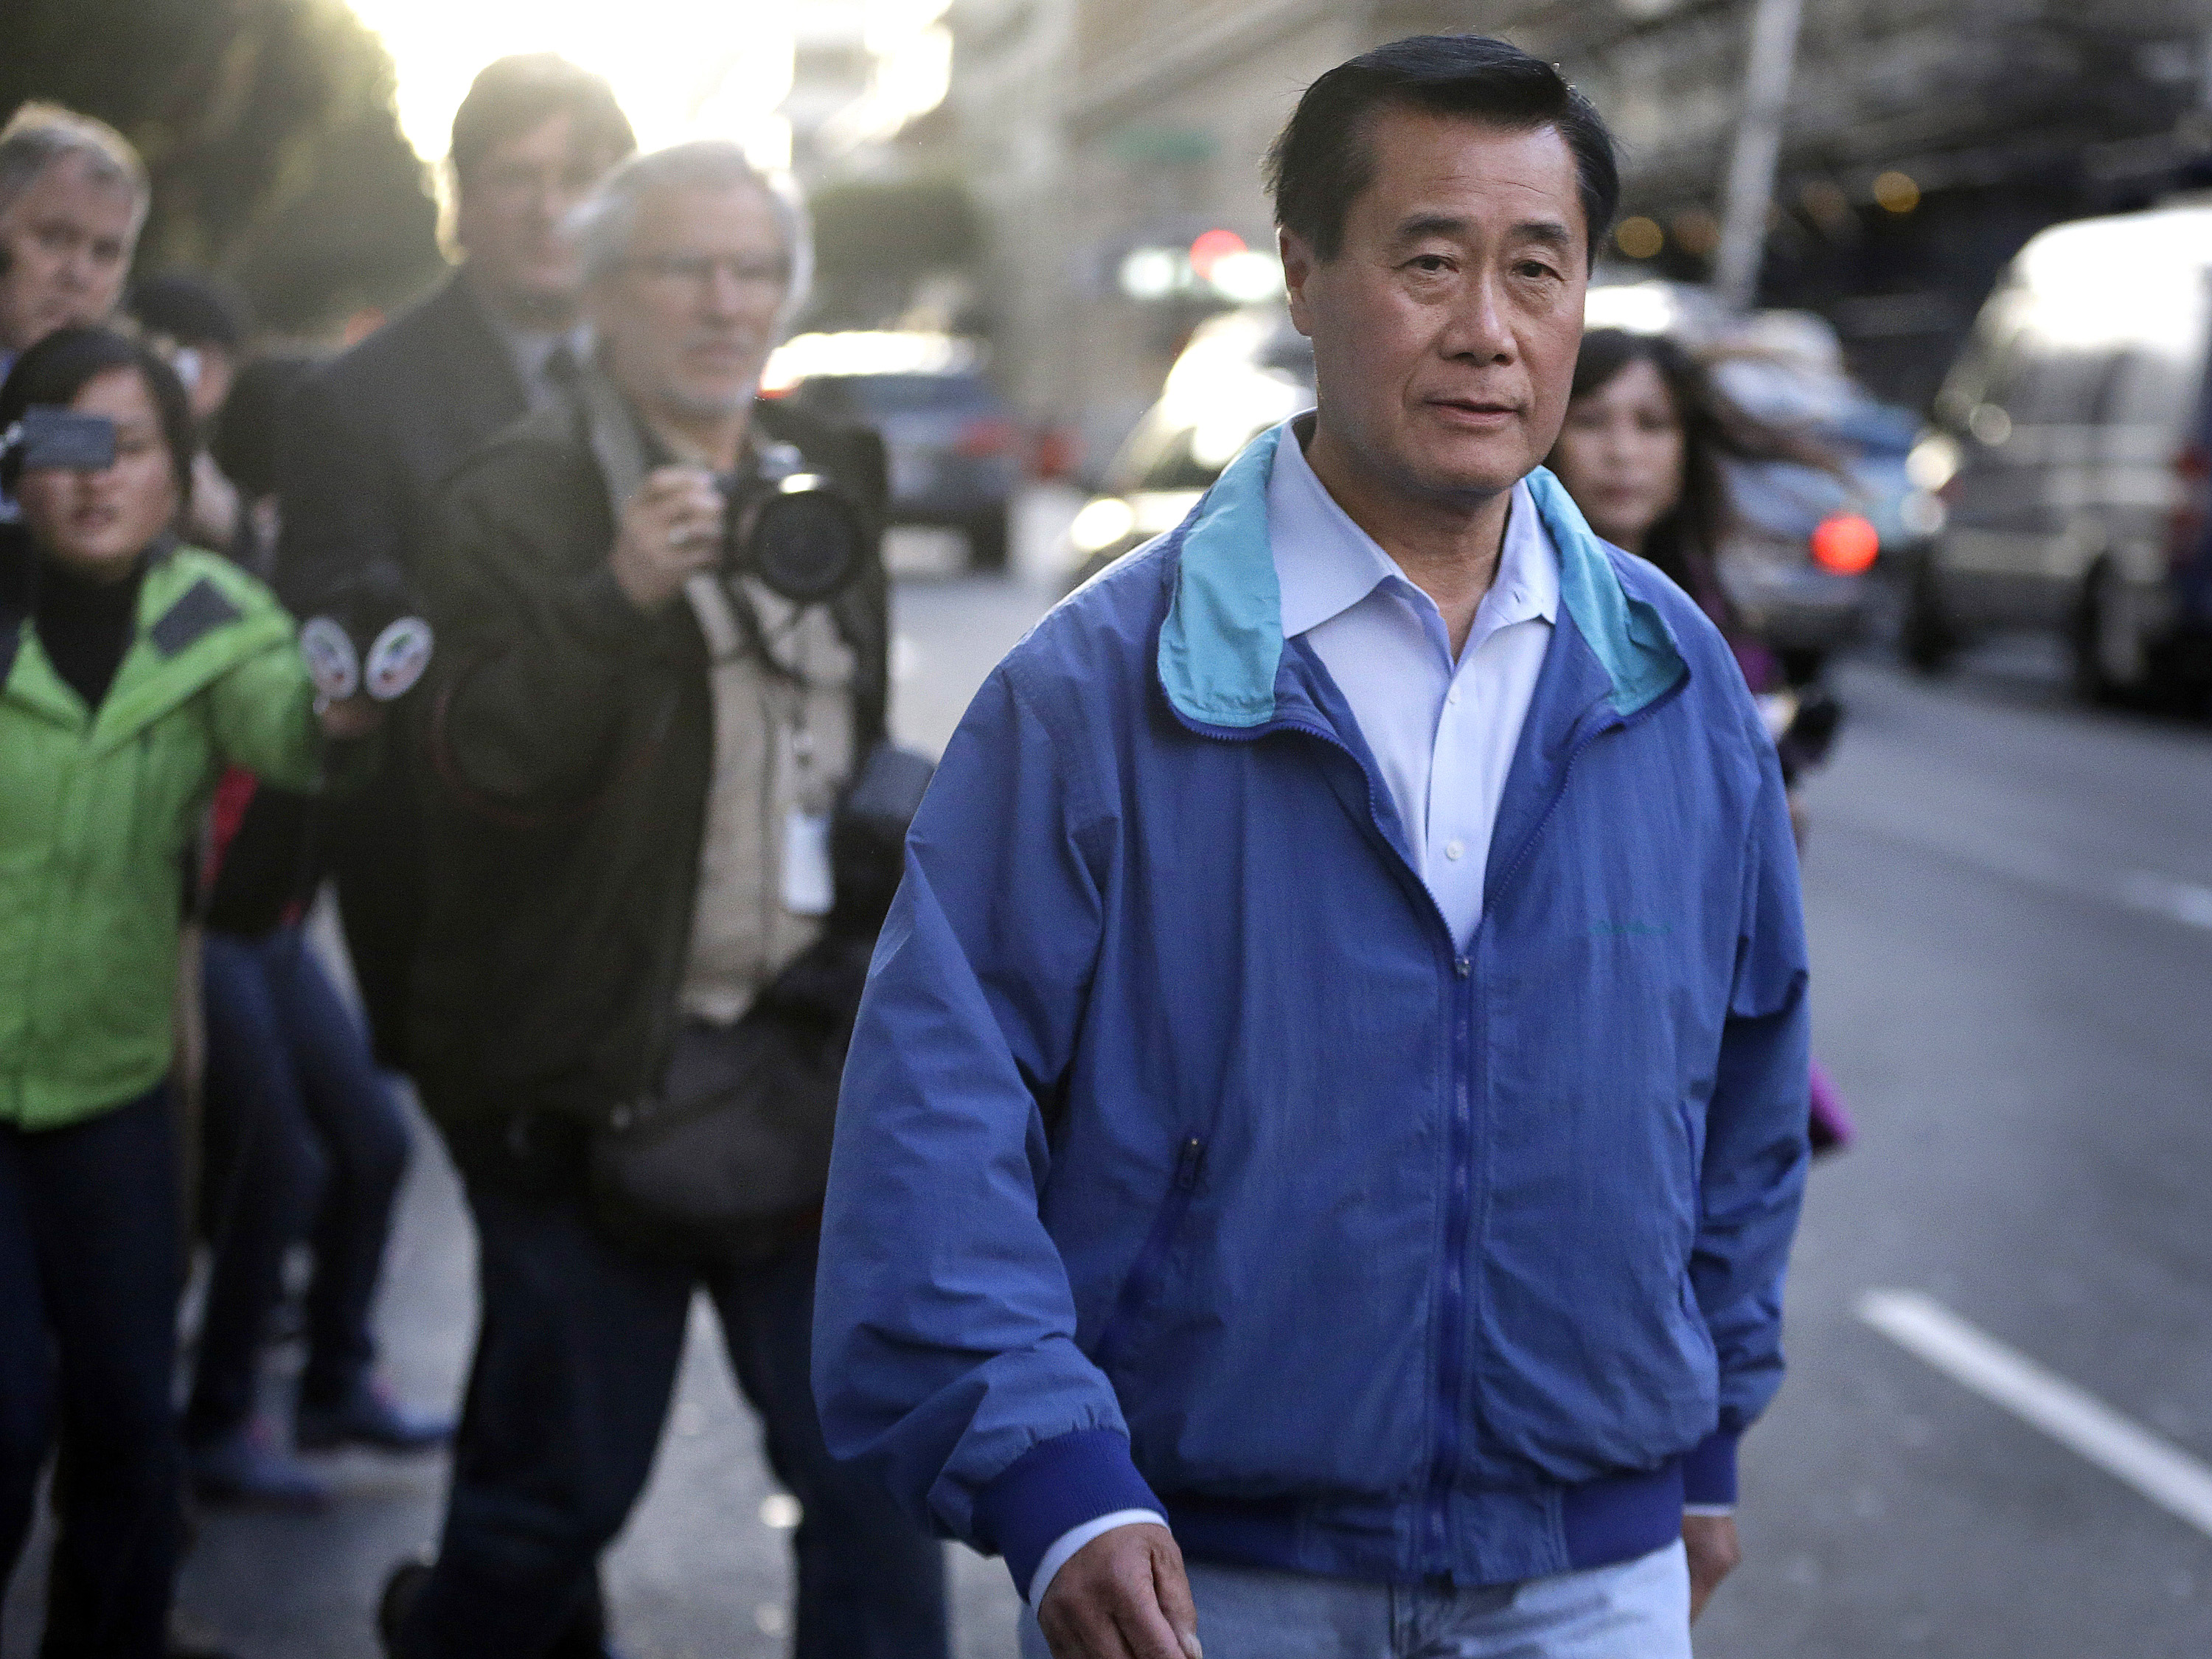 California state Sen. Leland Yee, D-San Francisco, right, leaves the San Francisco Federal Building in San Francisco, March 26, 2014.